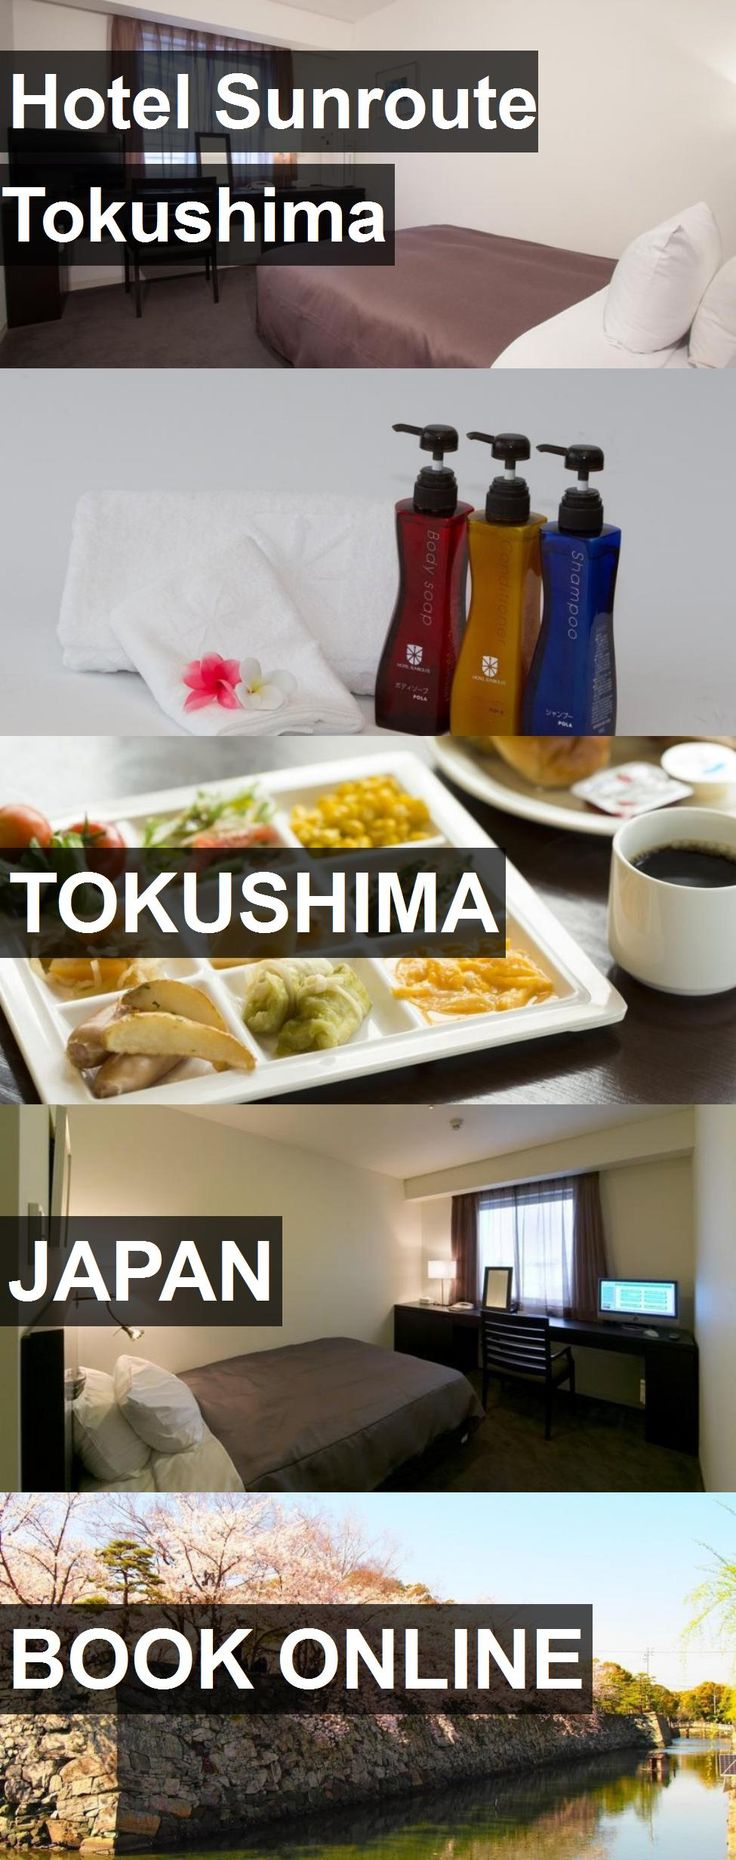 Hotel Sunroute Tokushima in Tokushima, Japan. For more information, photos, reviews and best prices please follow the link. #Japan #Tokushima #travel #vacation #hotel